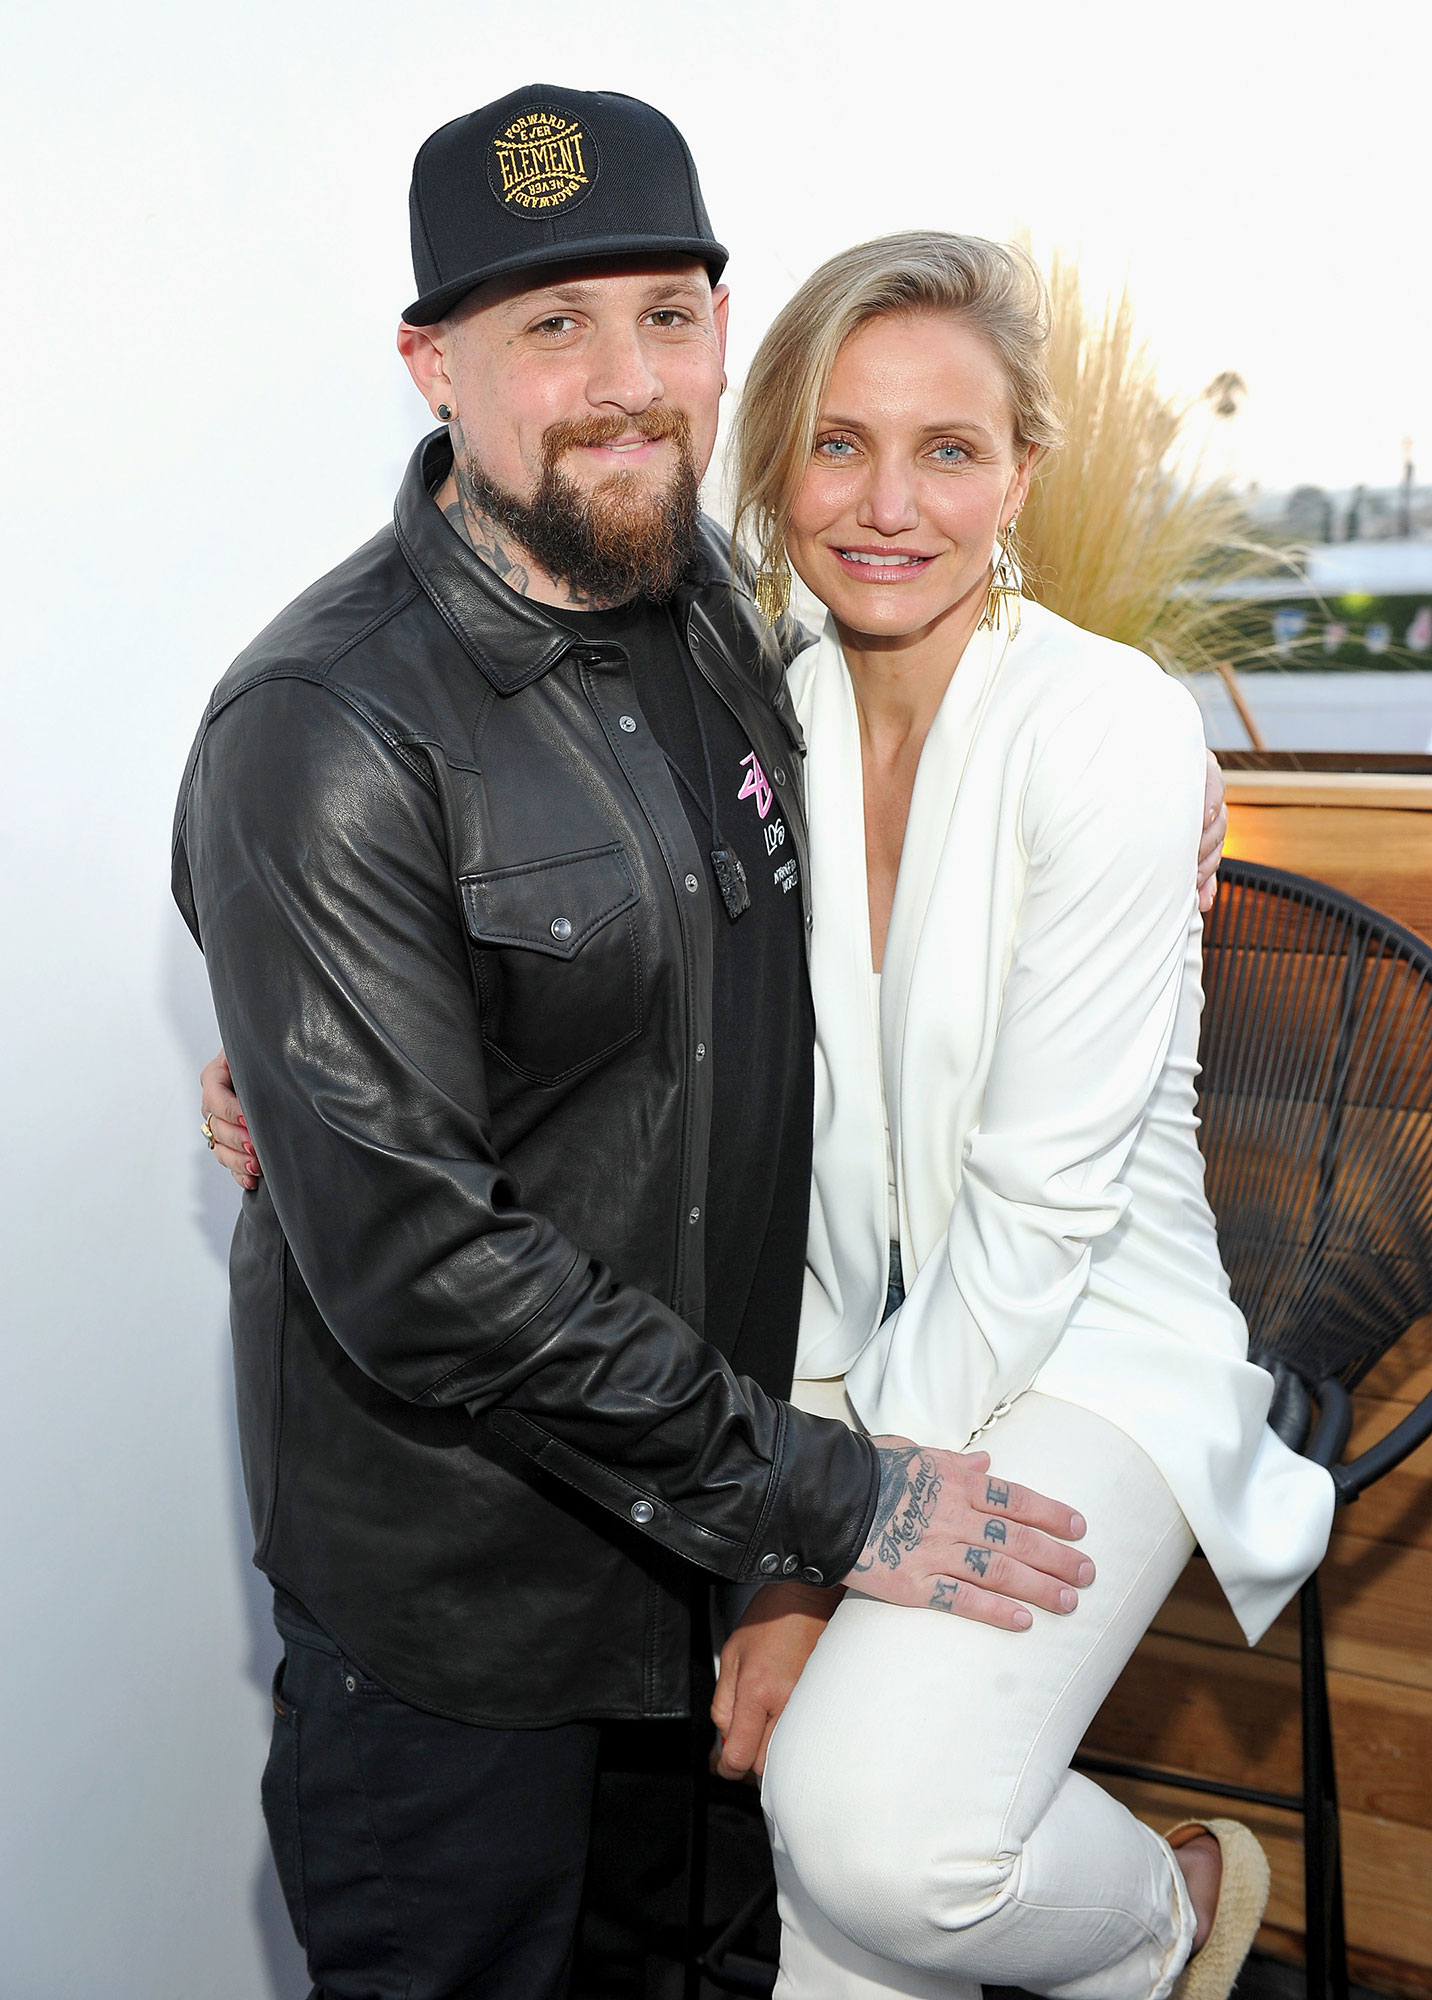 Celebrity Couples Who Got Engaged and Married in the Same Year - Engaged: December 2014 Married: January 5, 2015 Status: Still married